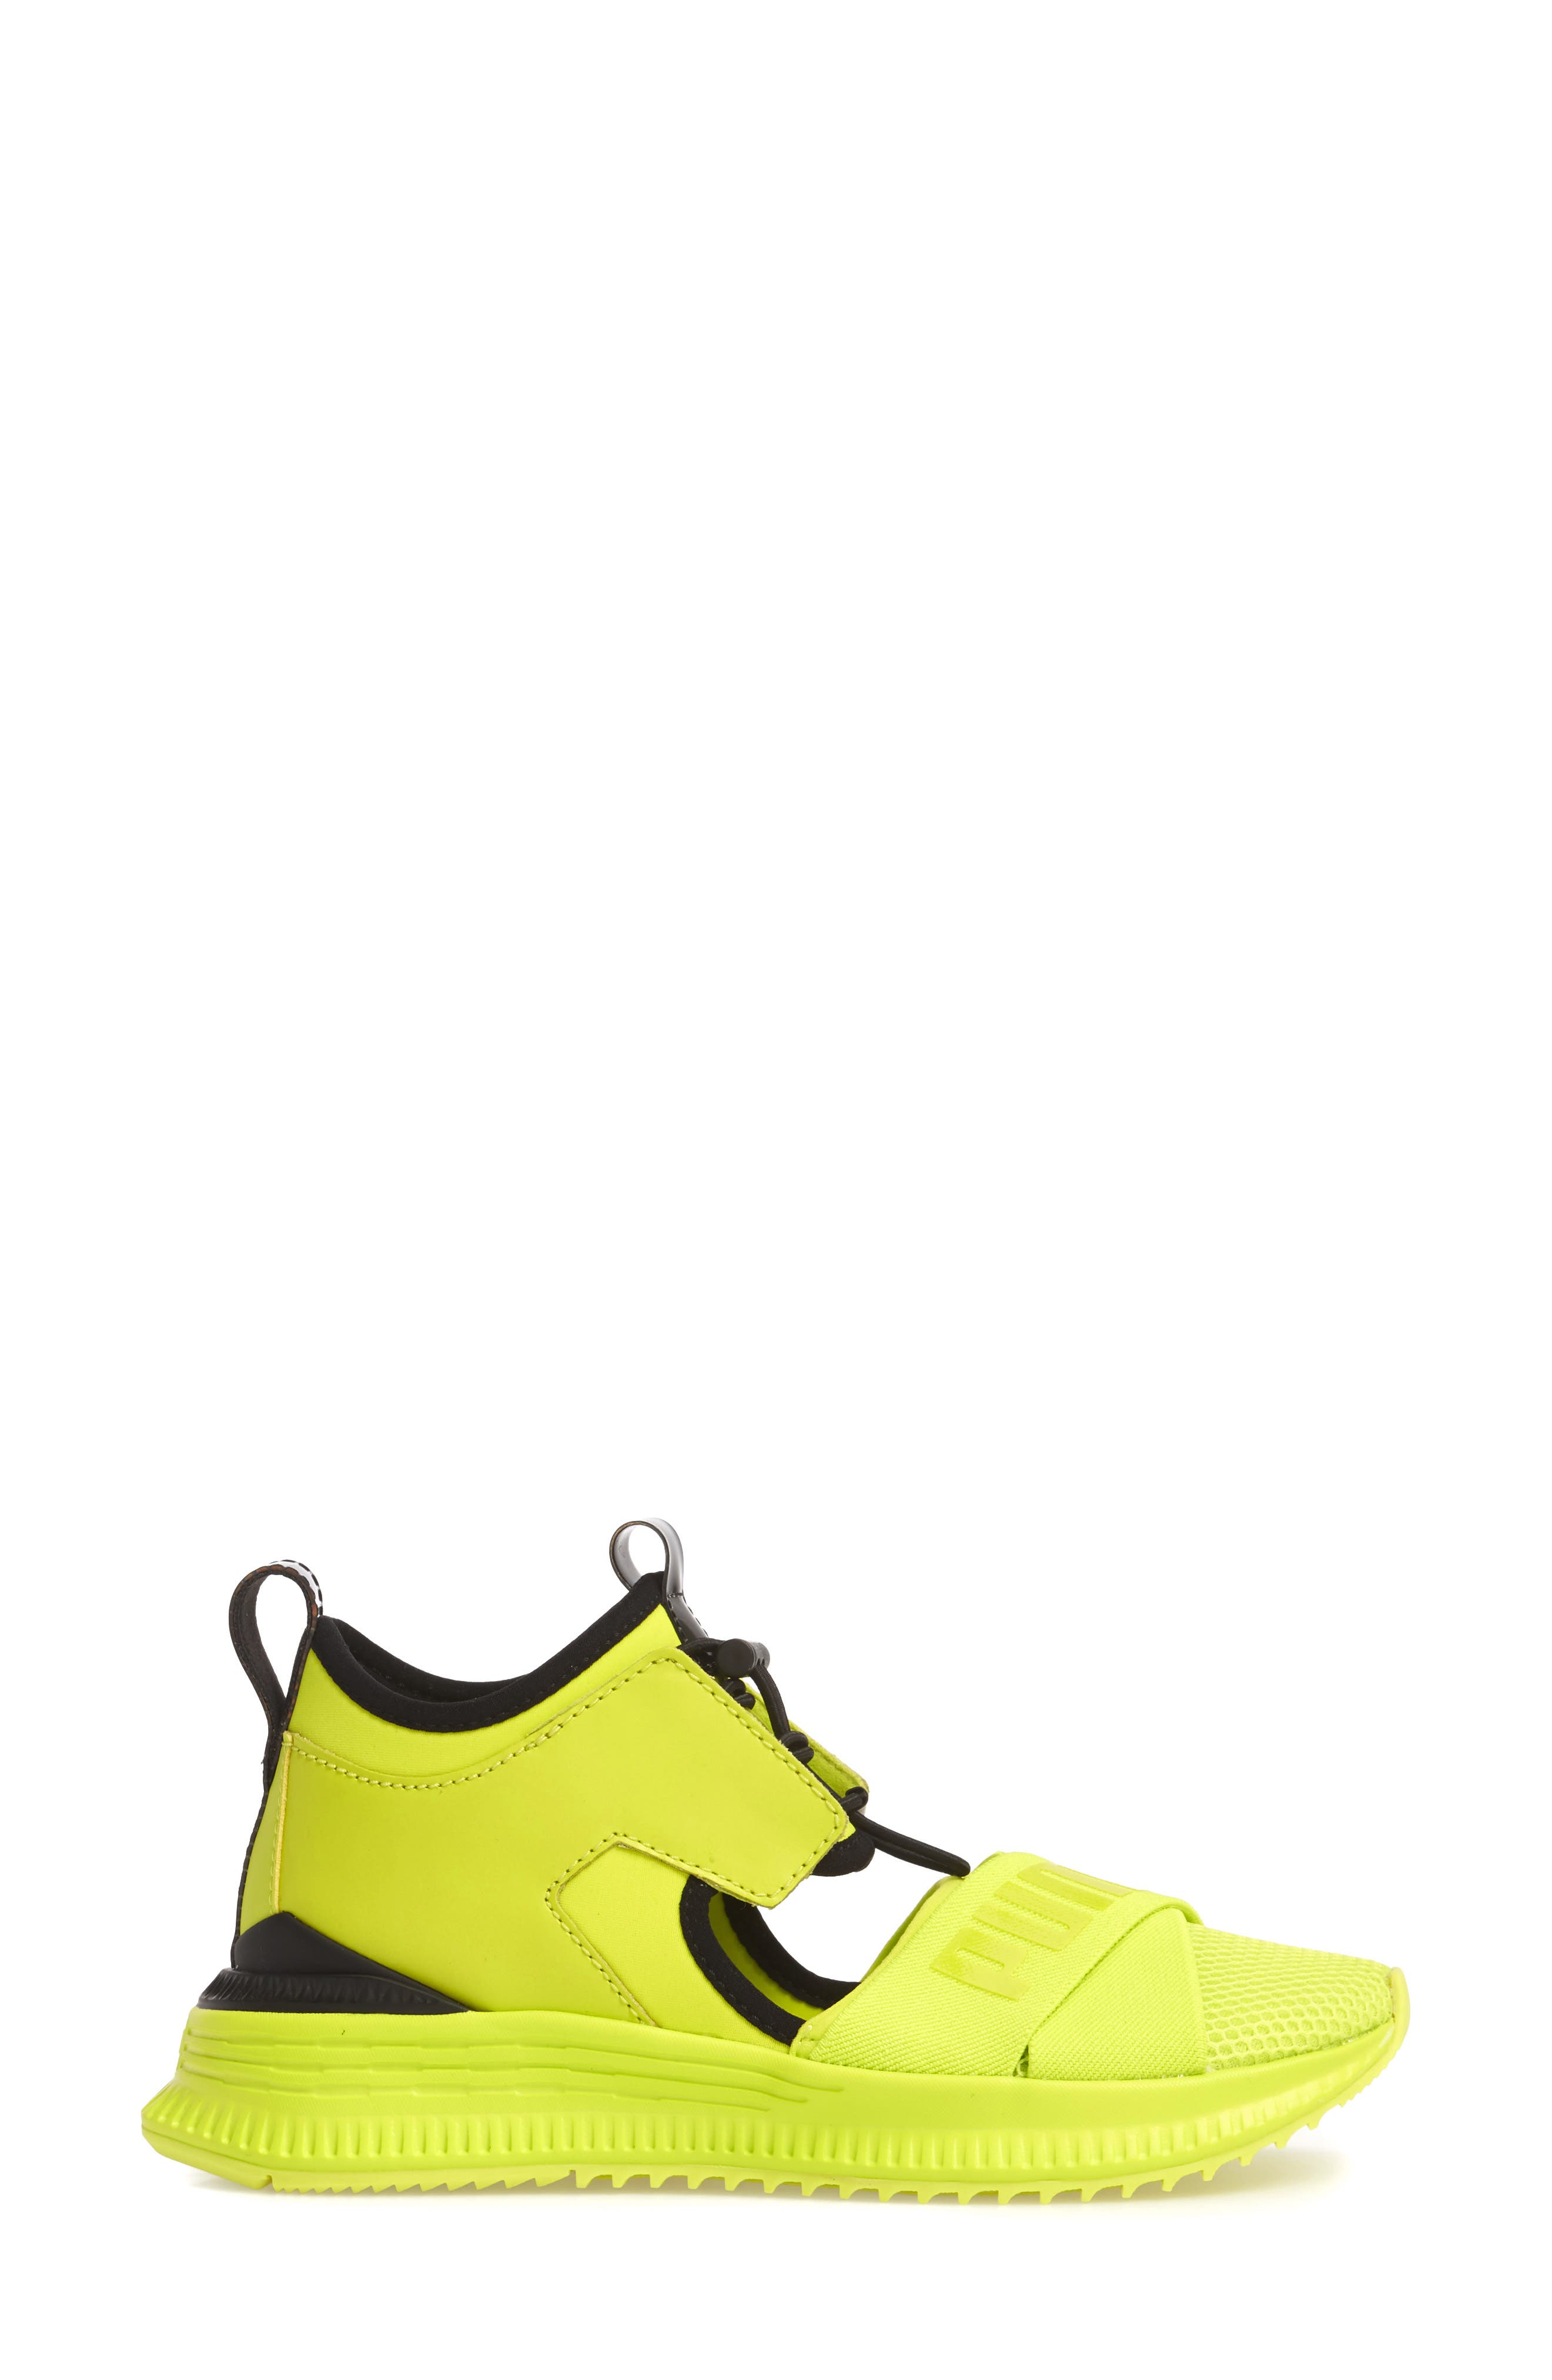 FENTY PUMA by Rihanna Avid Sneaker,                             Alternate thumbnail 3, color,                             Lime Punch/ Black/ Lime Punch